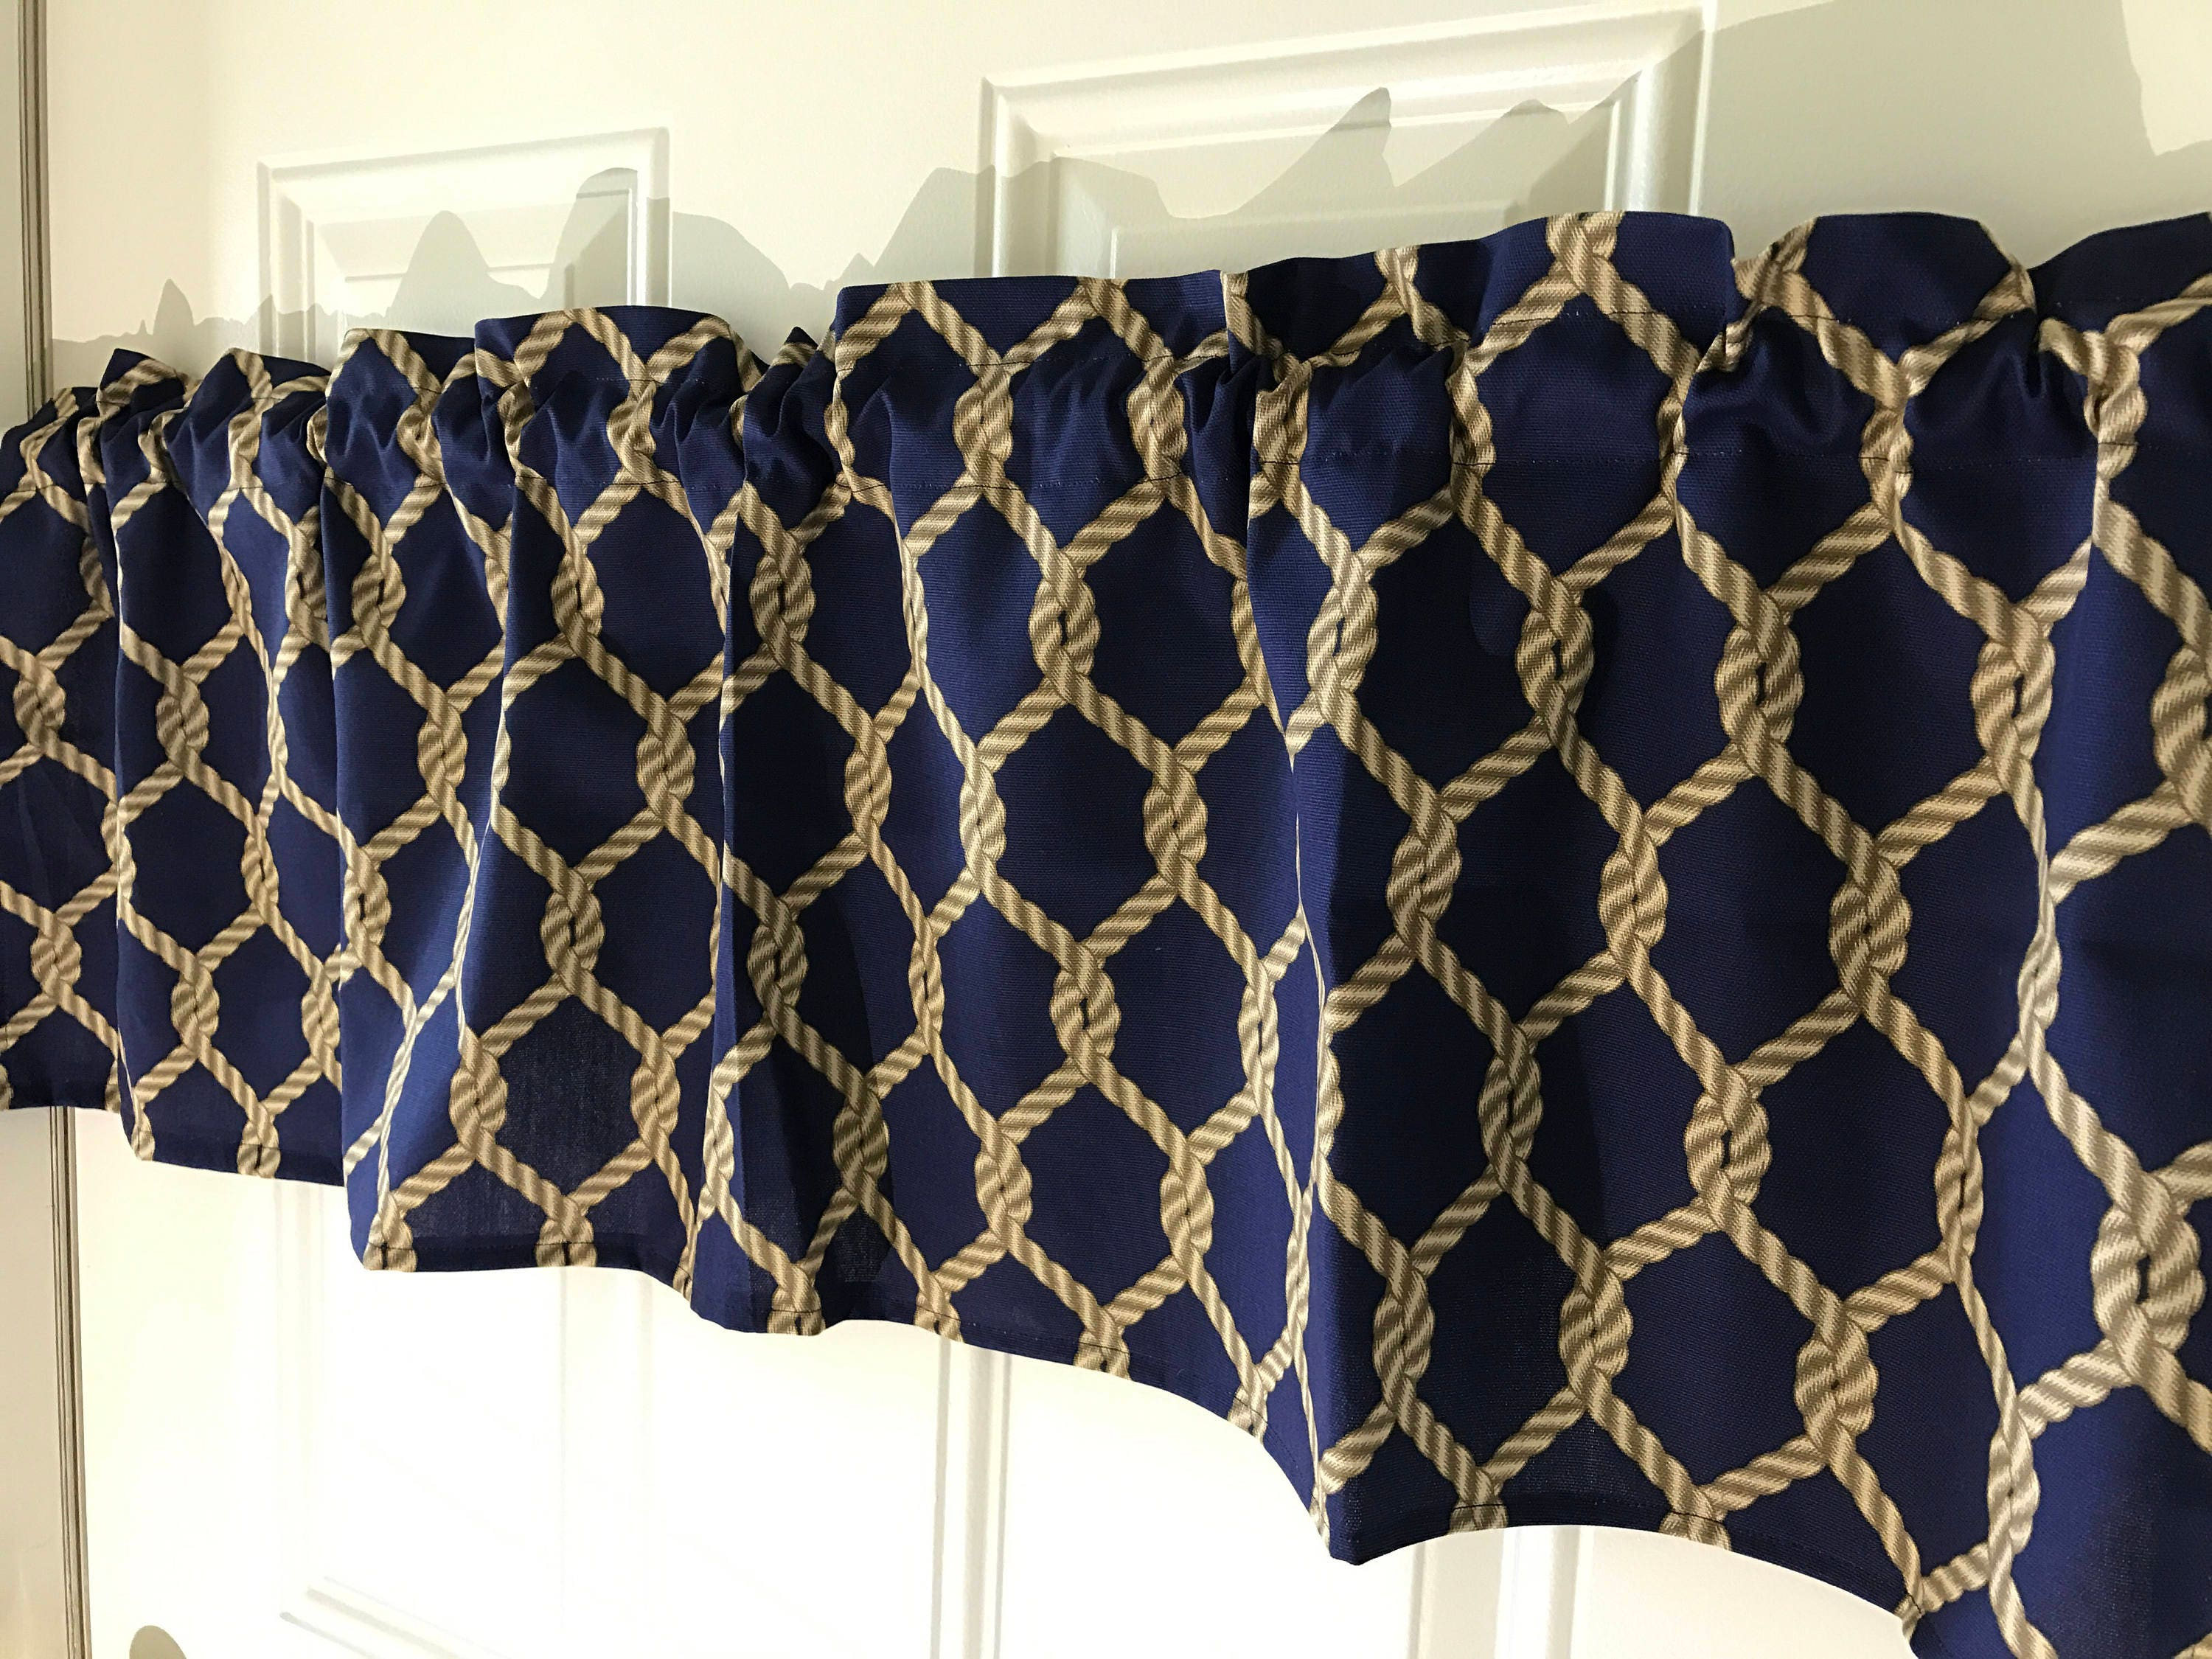 Nautical Inspired Rope Geometric Shape Curtain Valance